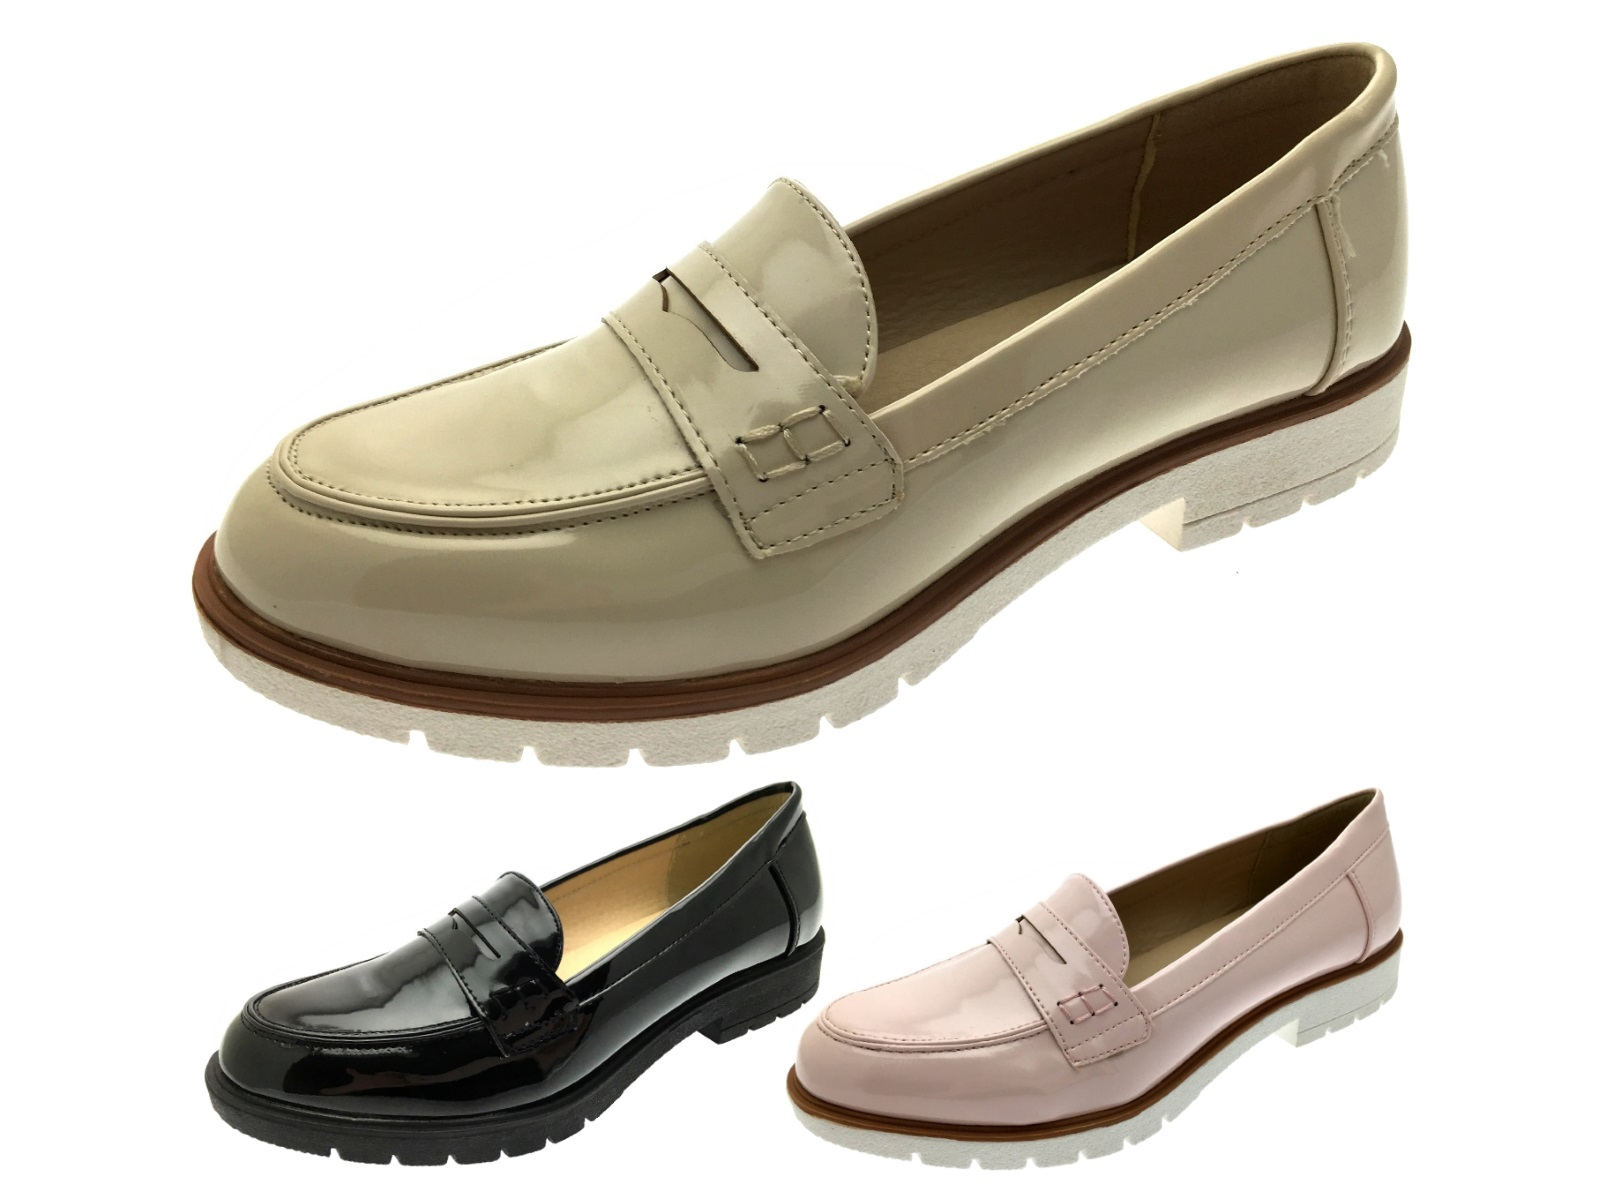 e45cddfcbf8aa Details about Womens Slip On Flat Loafers Faux Leather Moccasins Ladies  Casual Comfort Shoes